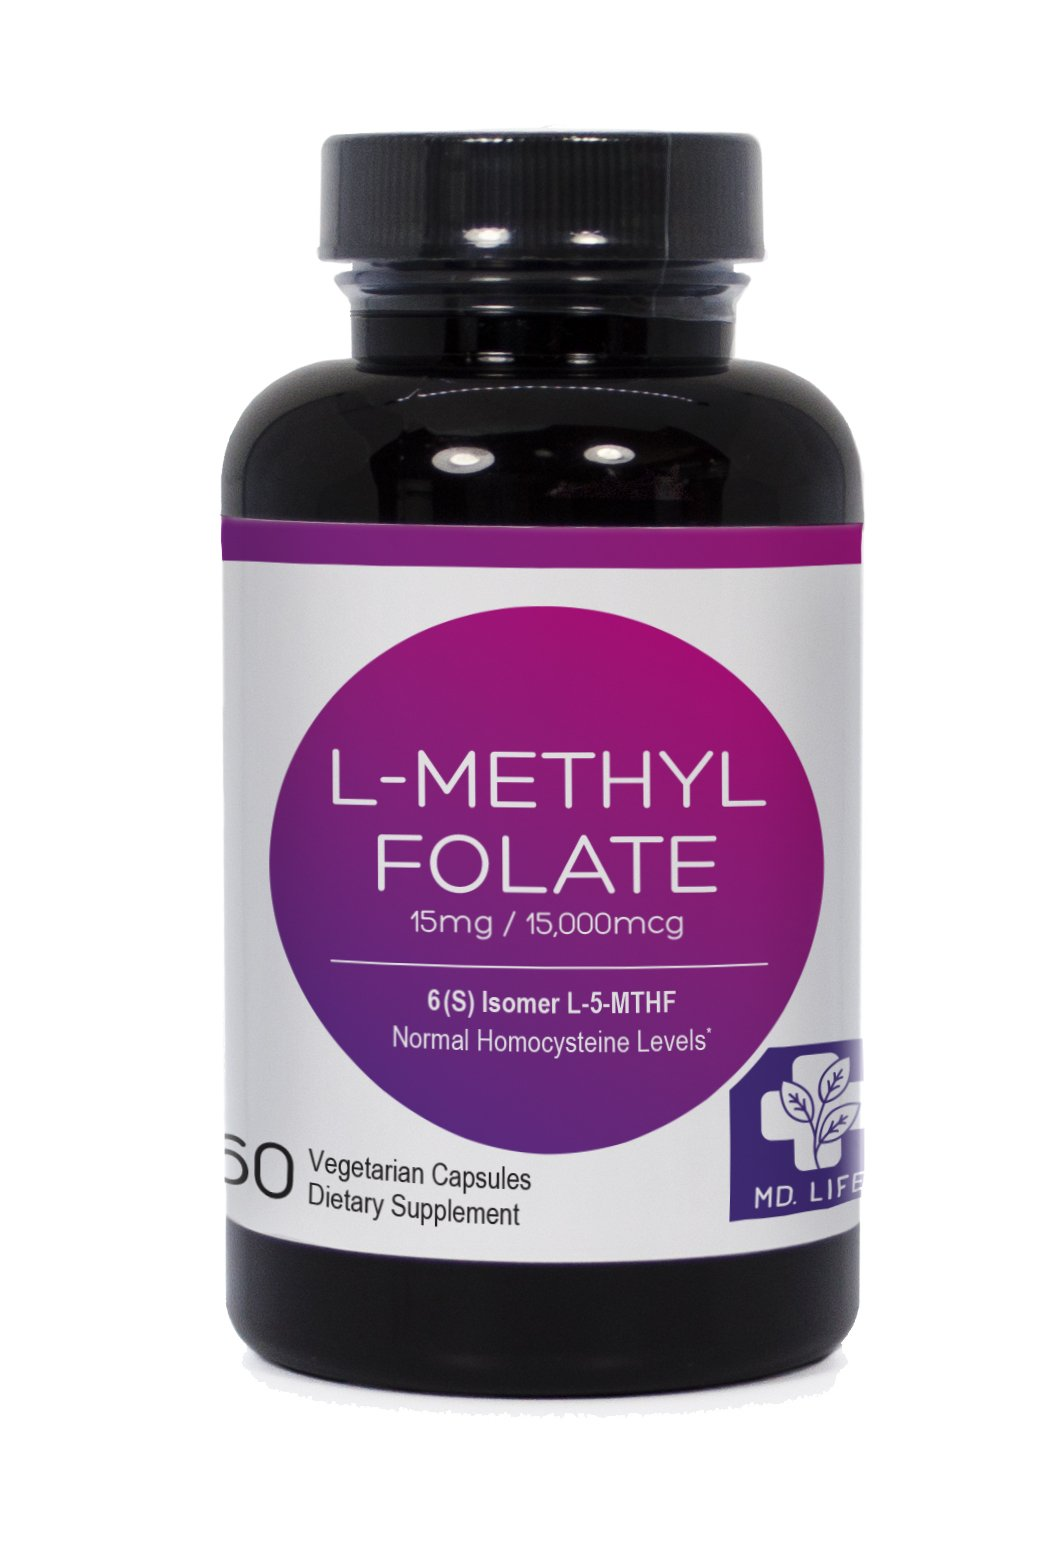 MD.LIFE L-Methyl Folate|5-MTHF| 15 mg| 60 Capsules Active Form of Folic Acid| Scientifically Formulated B Vitamin Blend with B12, B9, Niacin, B1, B2  (60 Caps)